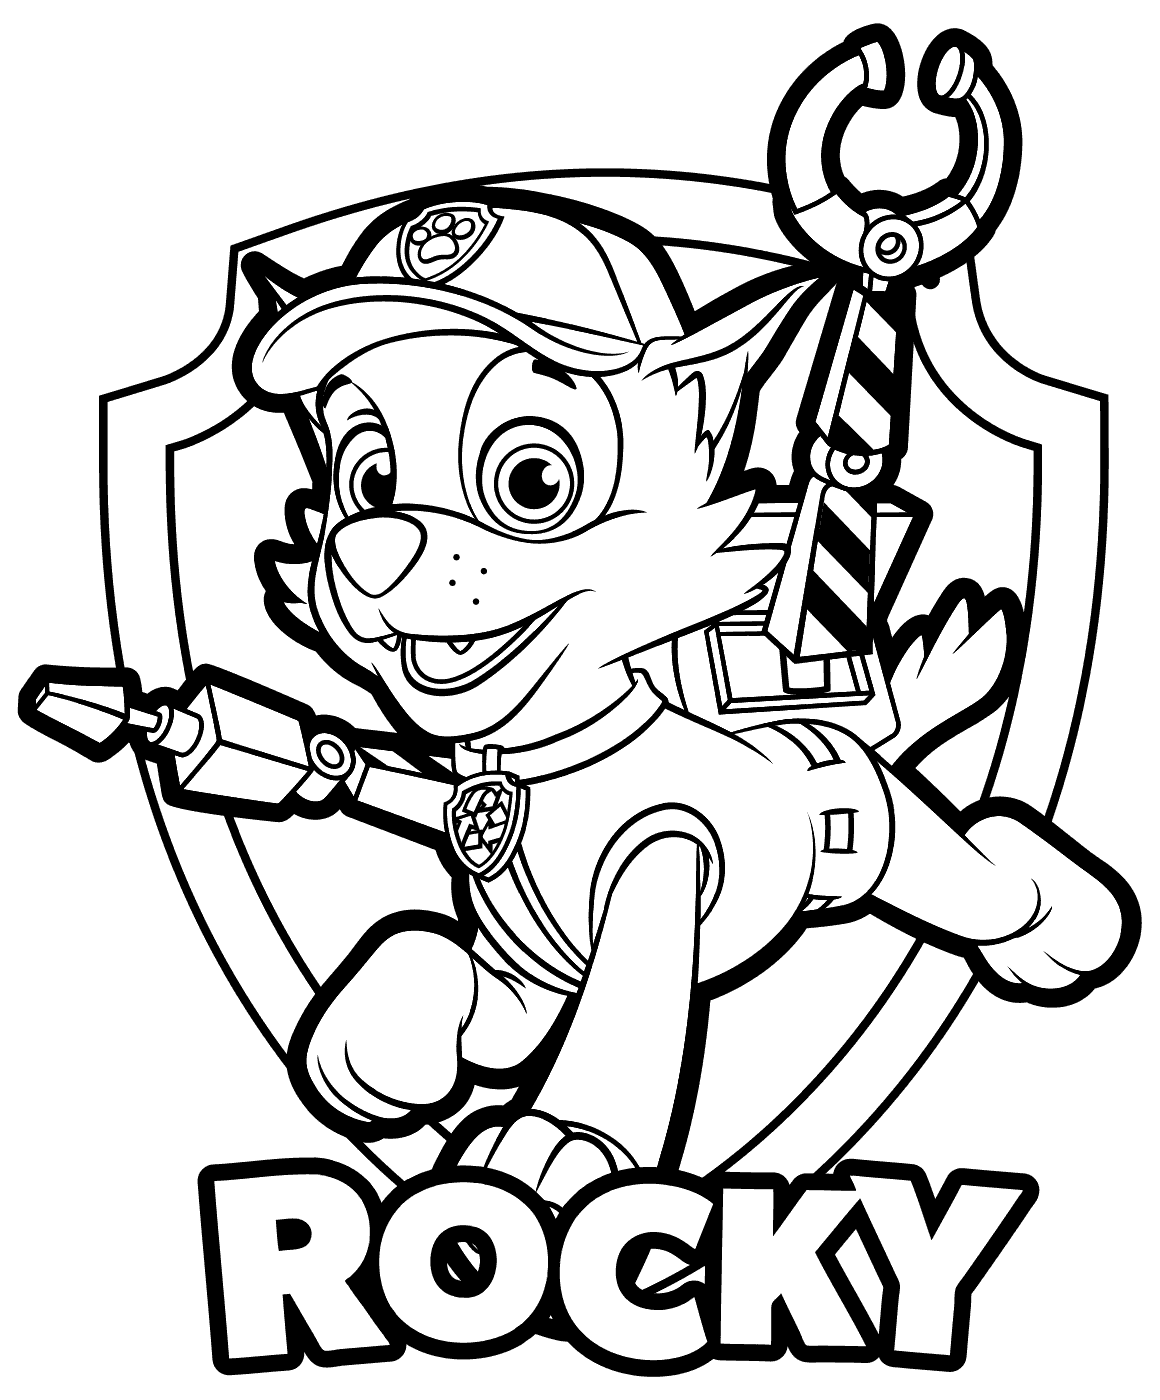 paw patrol coloring pages paw patrol coloring pages free printable coloring page patrol coloring paw pages